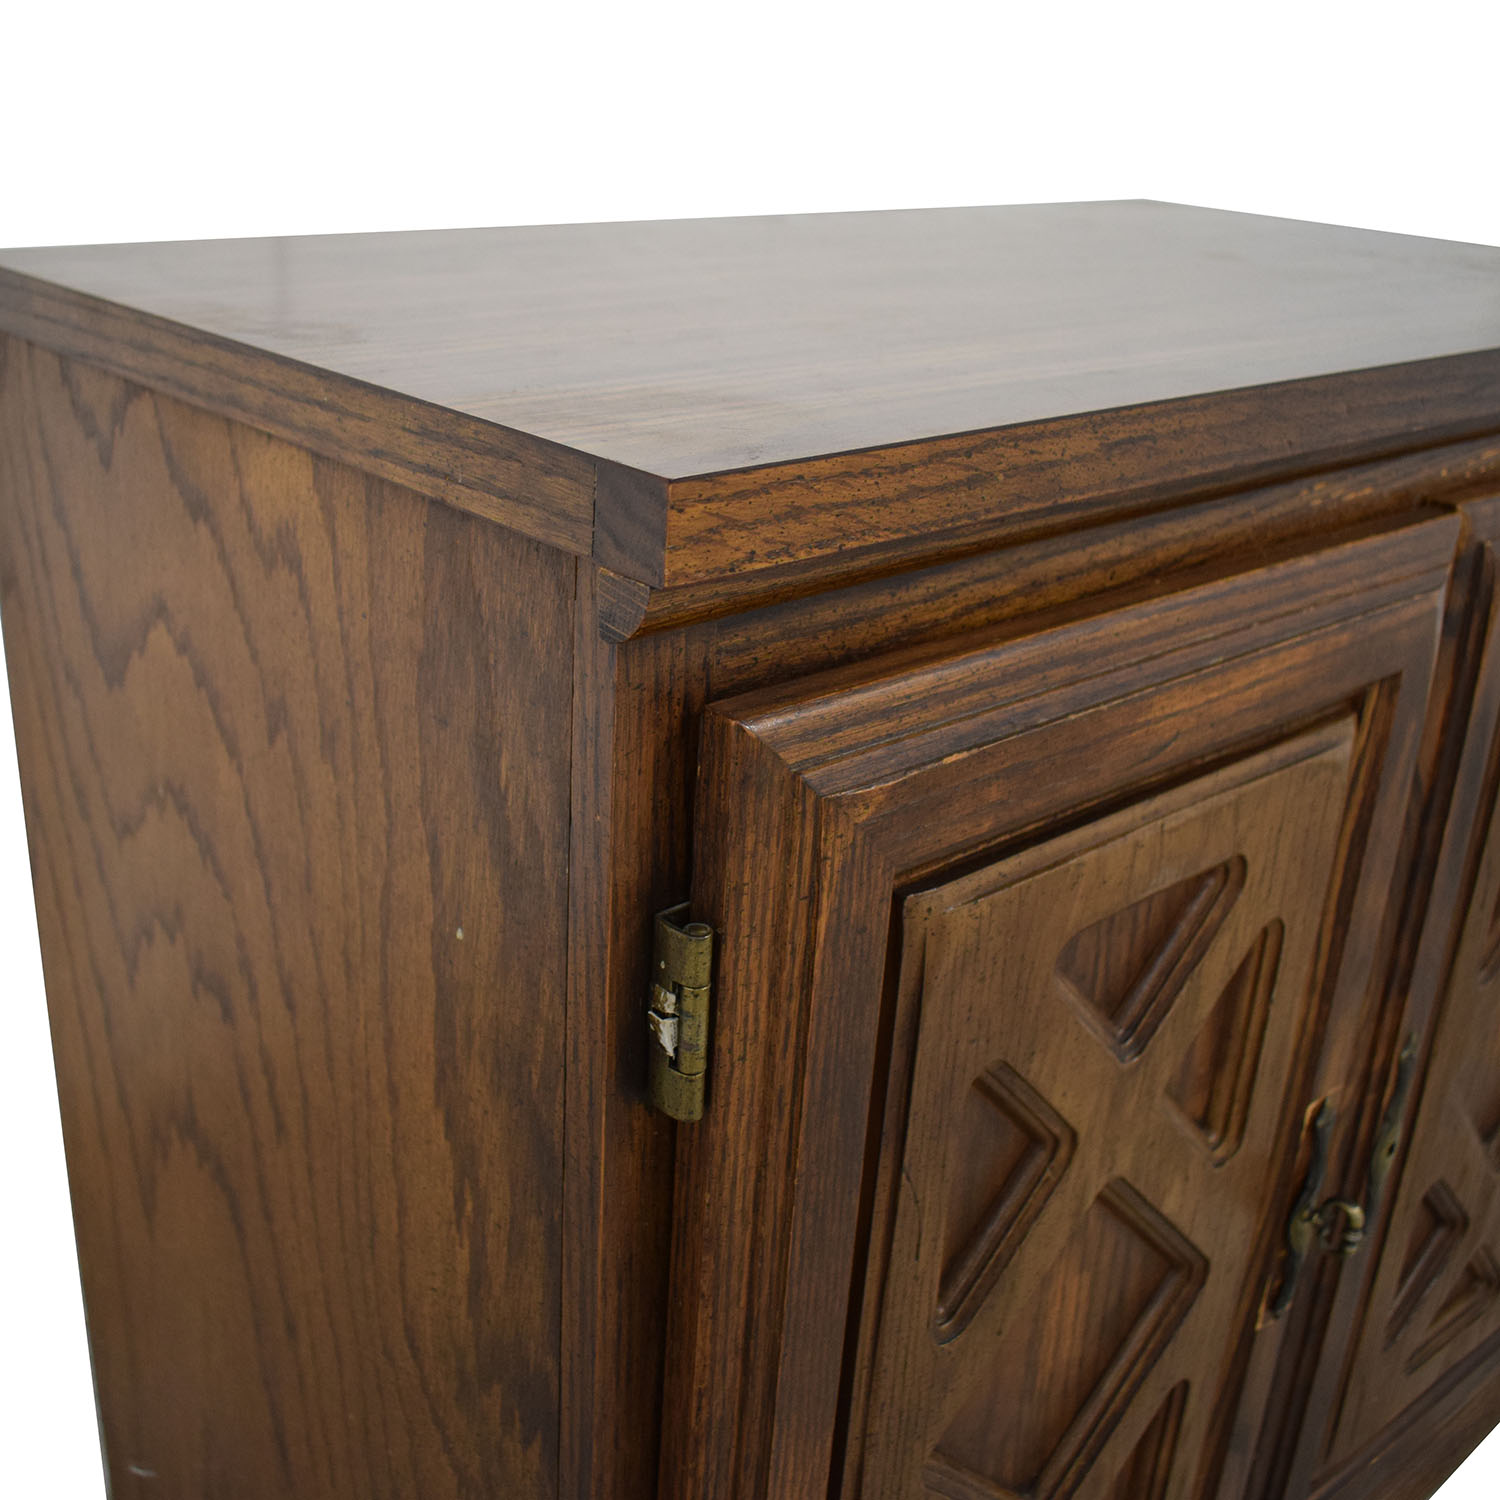 Wood Chest with Shelves